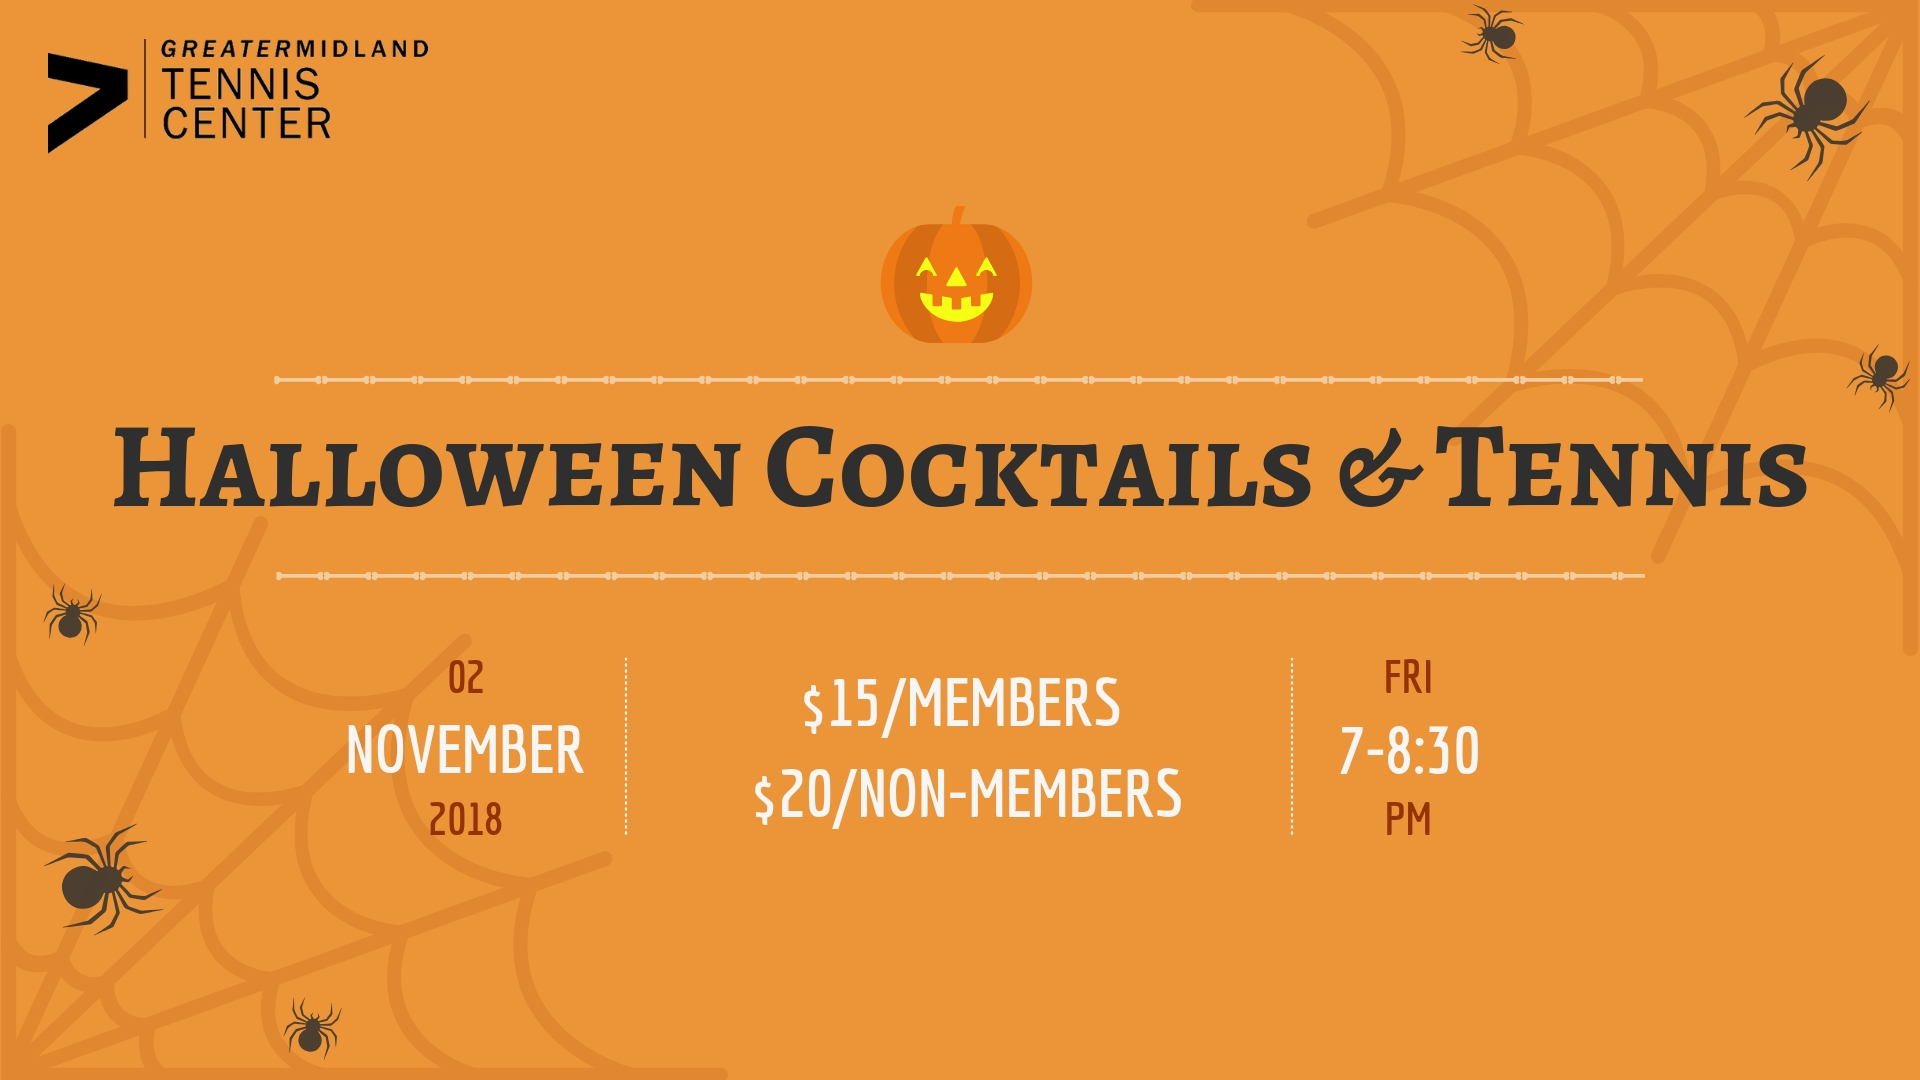 Halloween Cocktails & Tennis.jpg